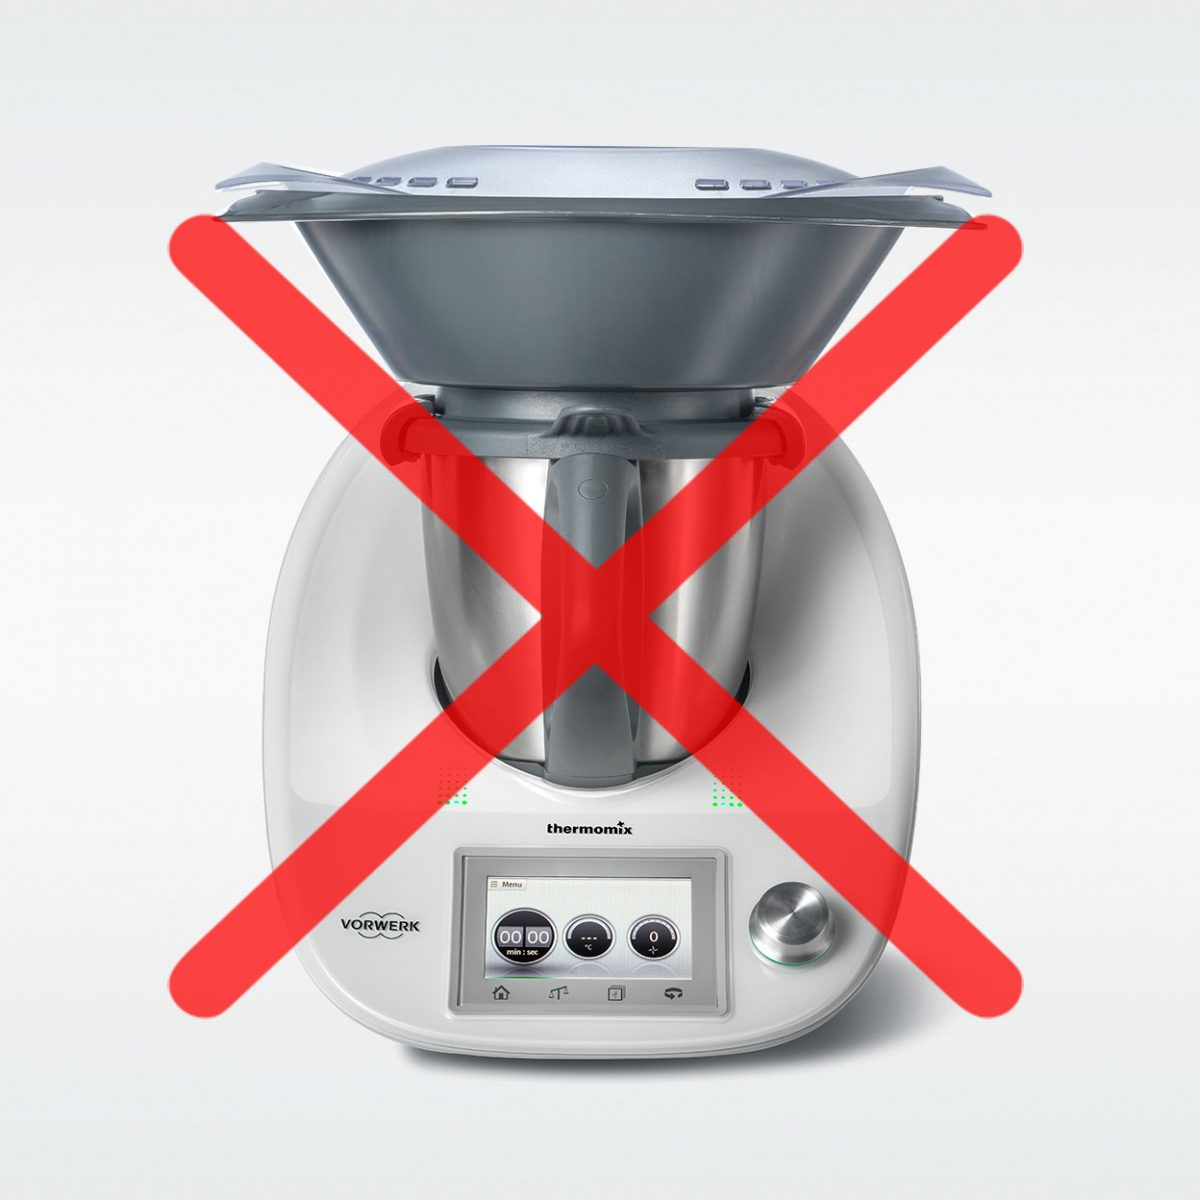 thermomix nervt